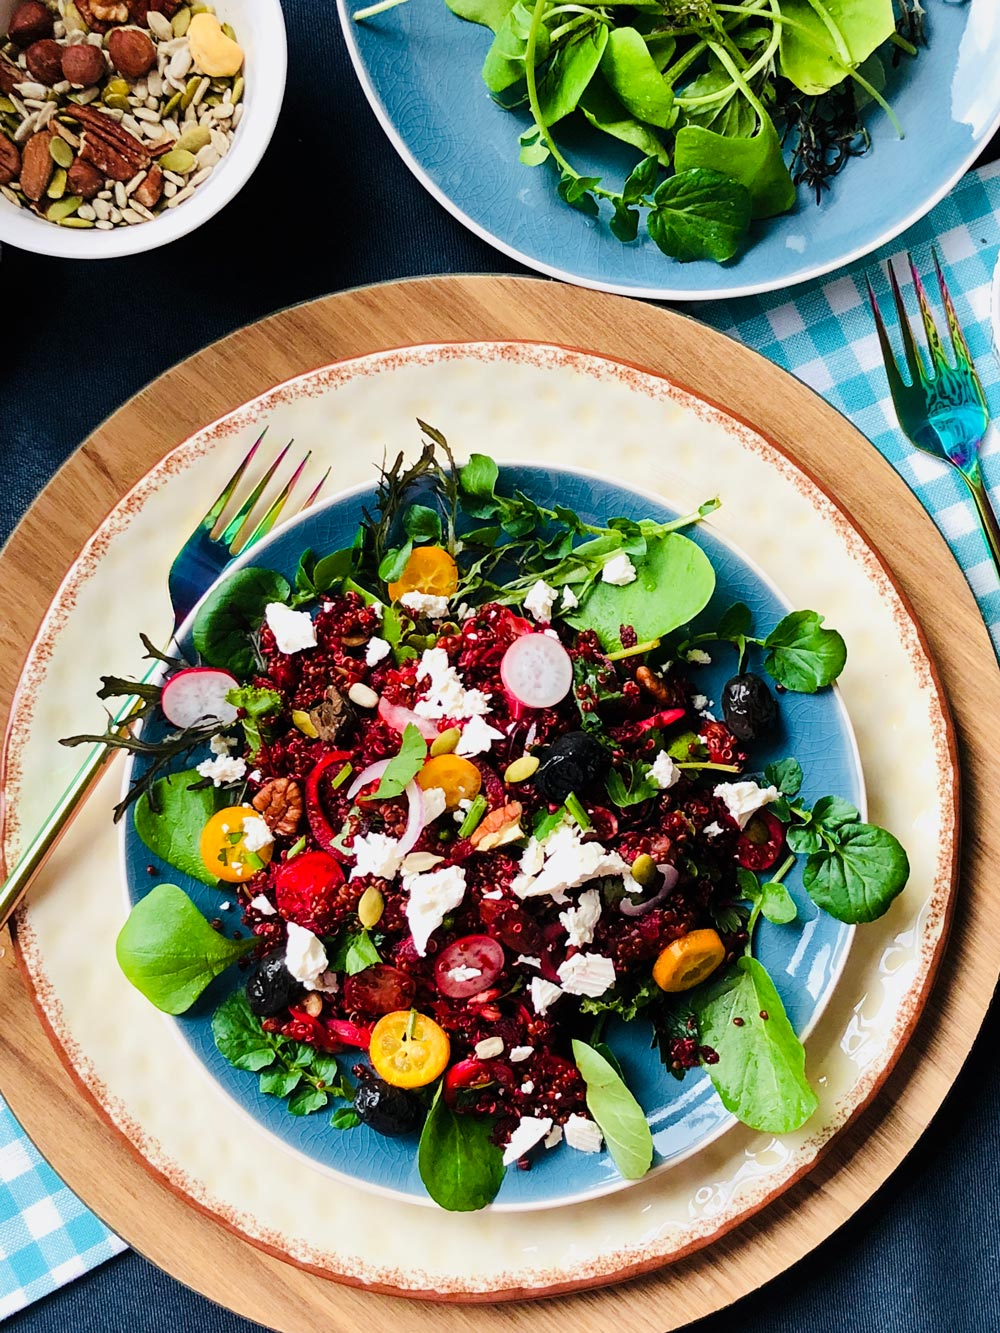 Red quinoa with beets, olives, red onion and feta salad